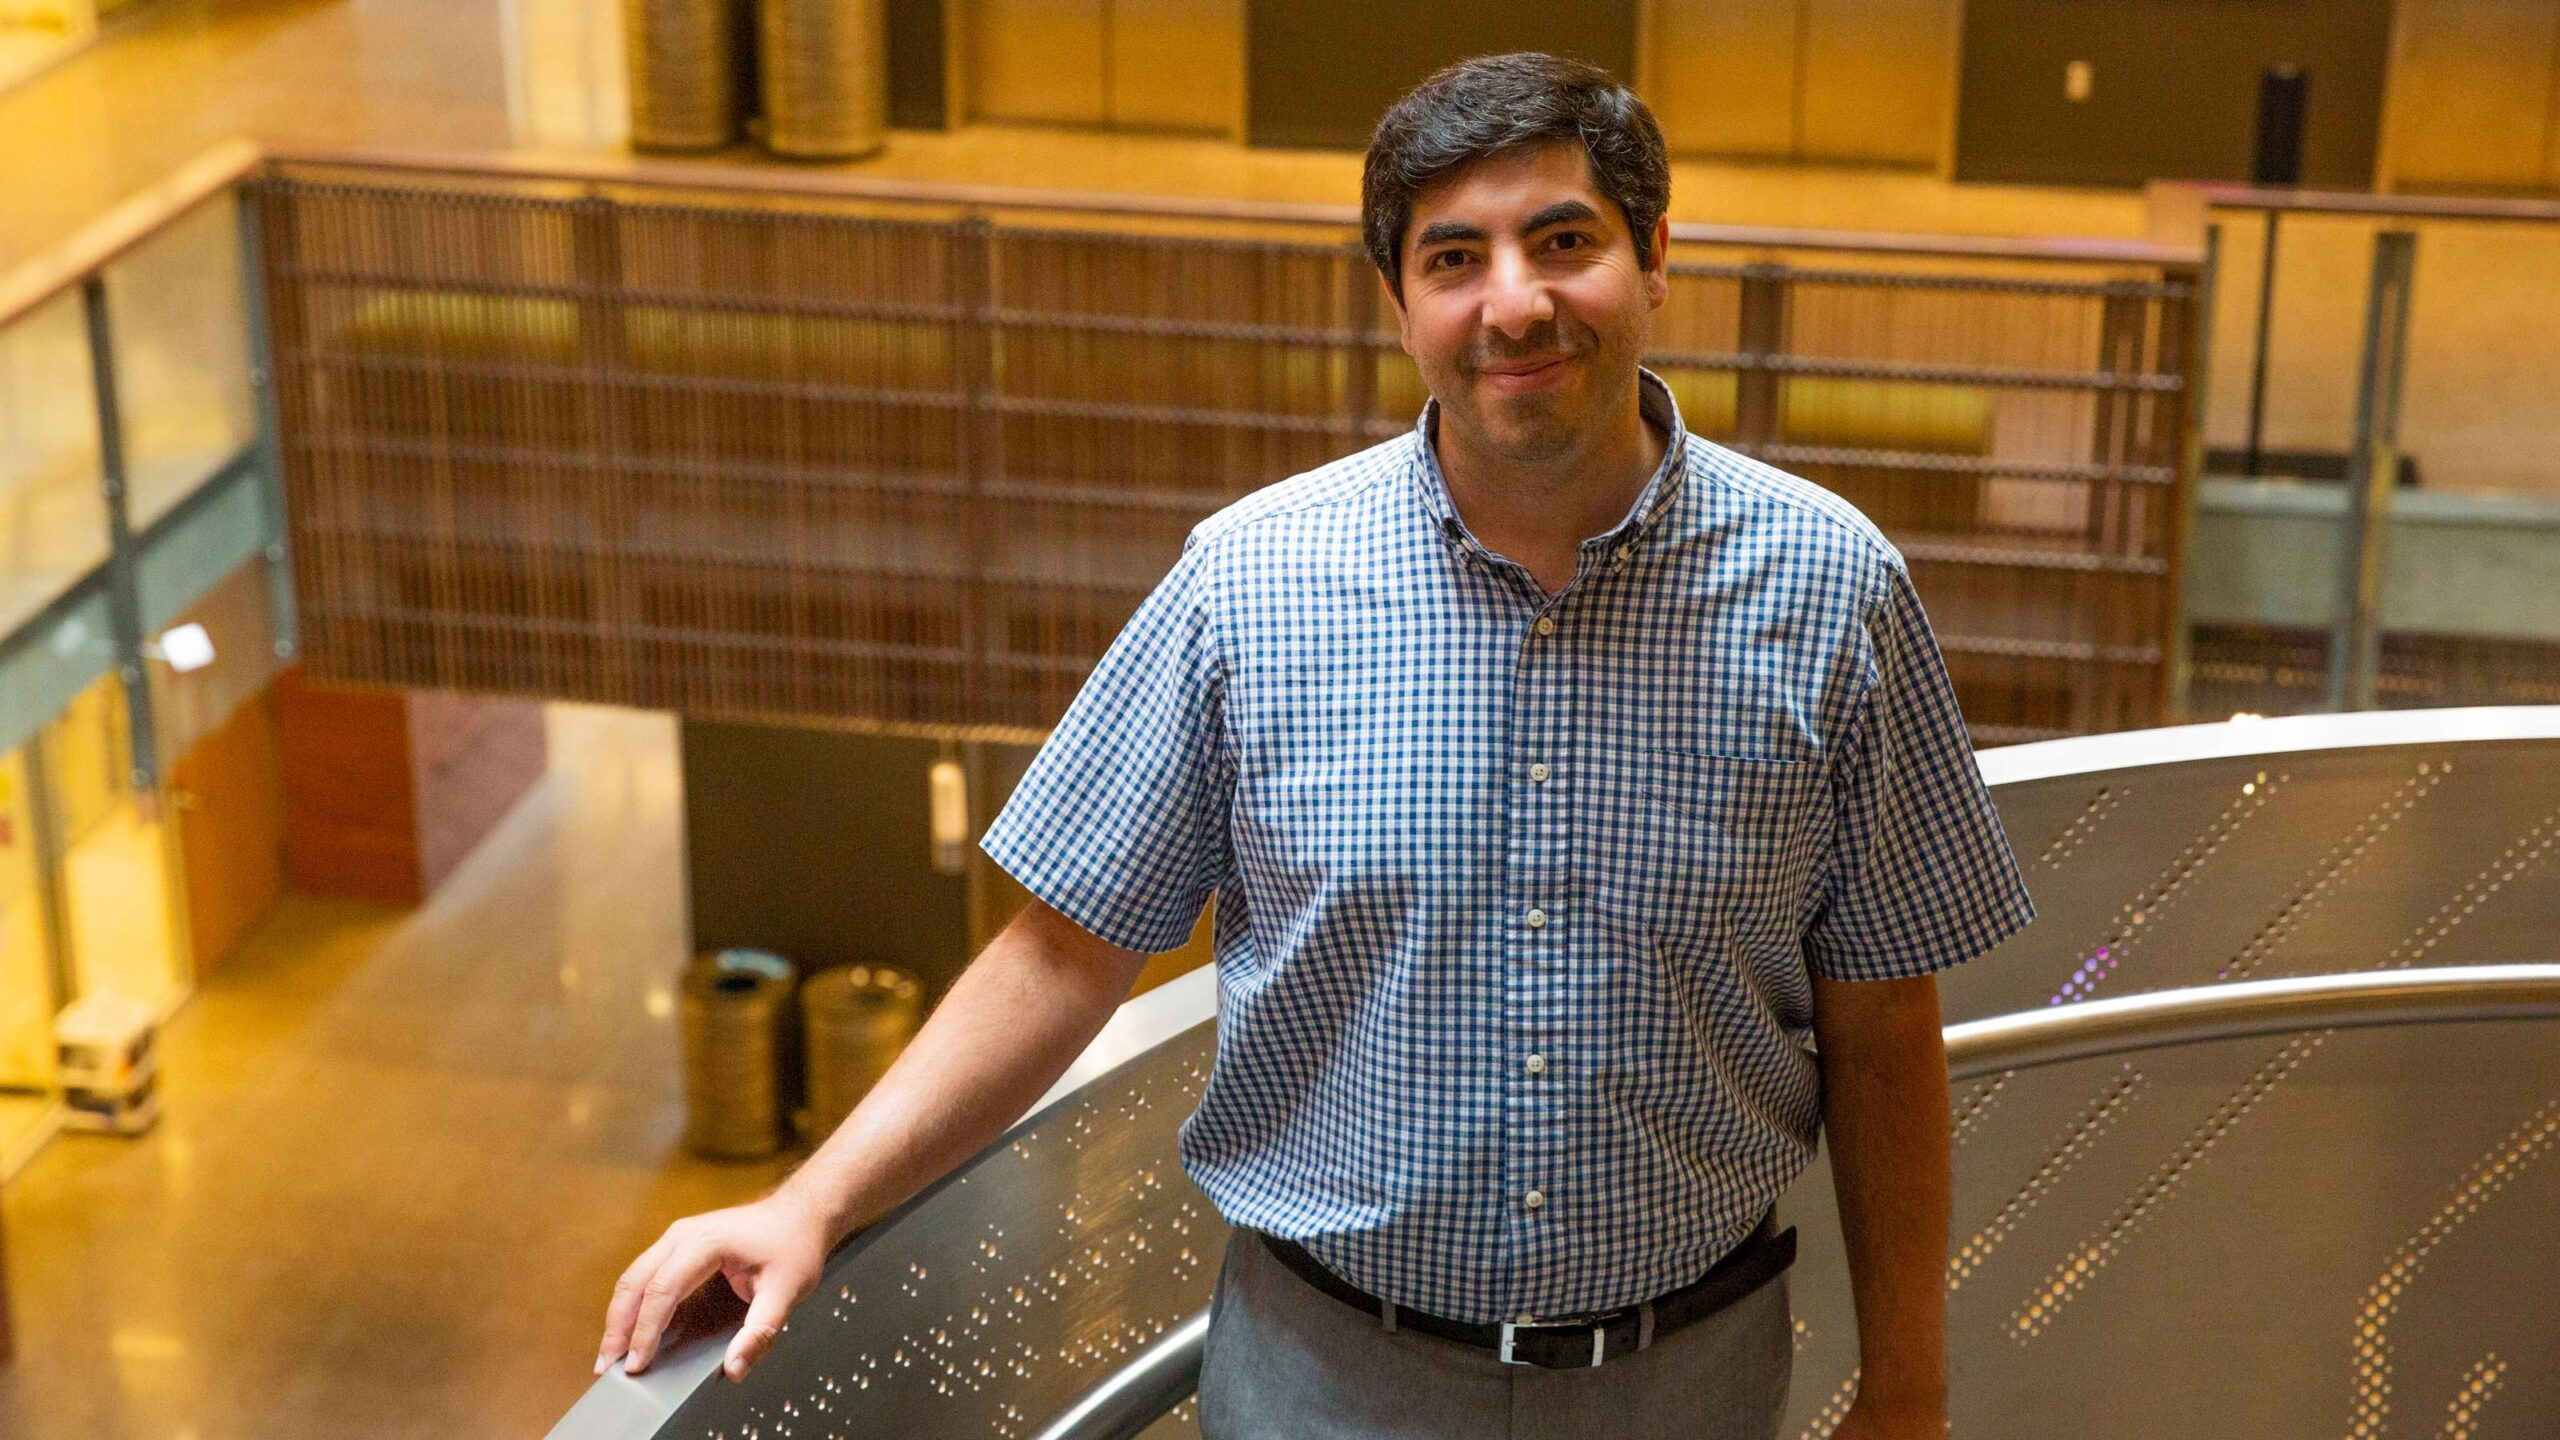 Saeed Zeinolabedinzadeh, an electrical and computer engineer and assistant professor in ASU's Ira A. Fulton Schools of Engineering.